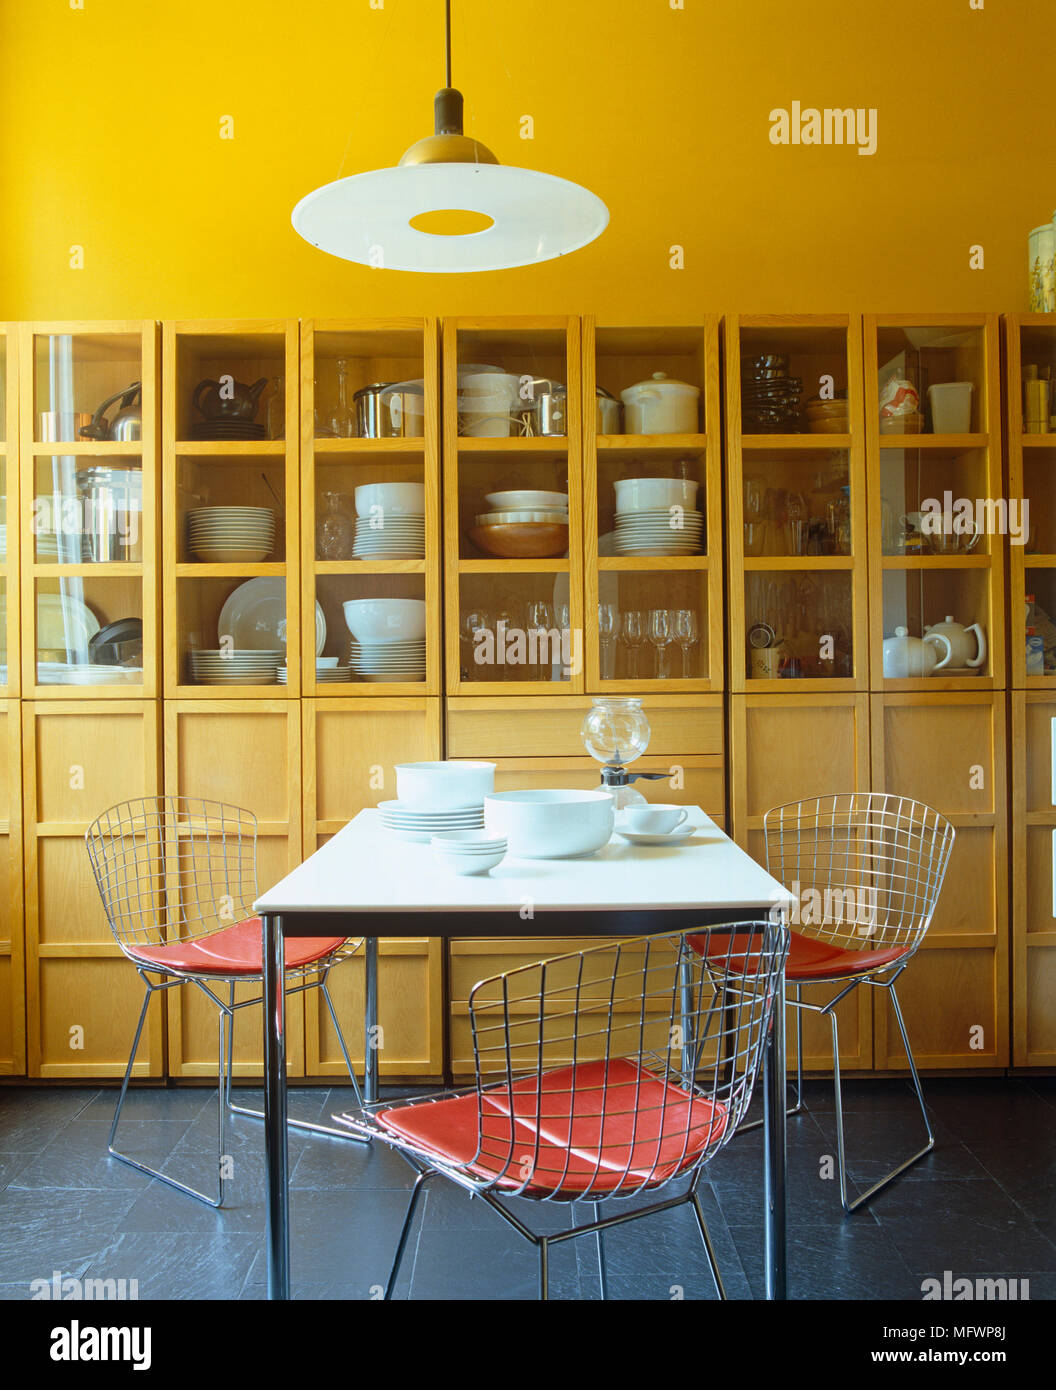 Harry bertoia wire chairs at table in contemporary yellow dining harry bertoia wire chairs at table in contemporary yellow dining room keyboard keysfo Image collections